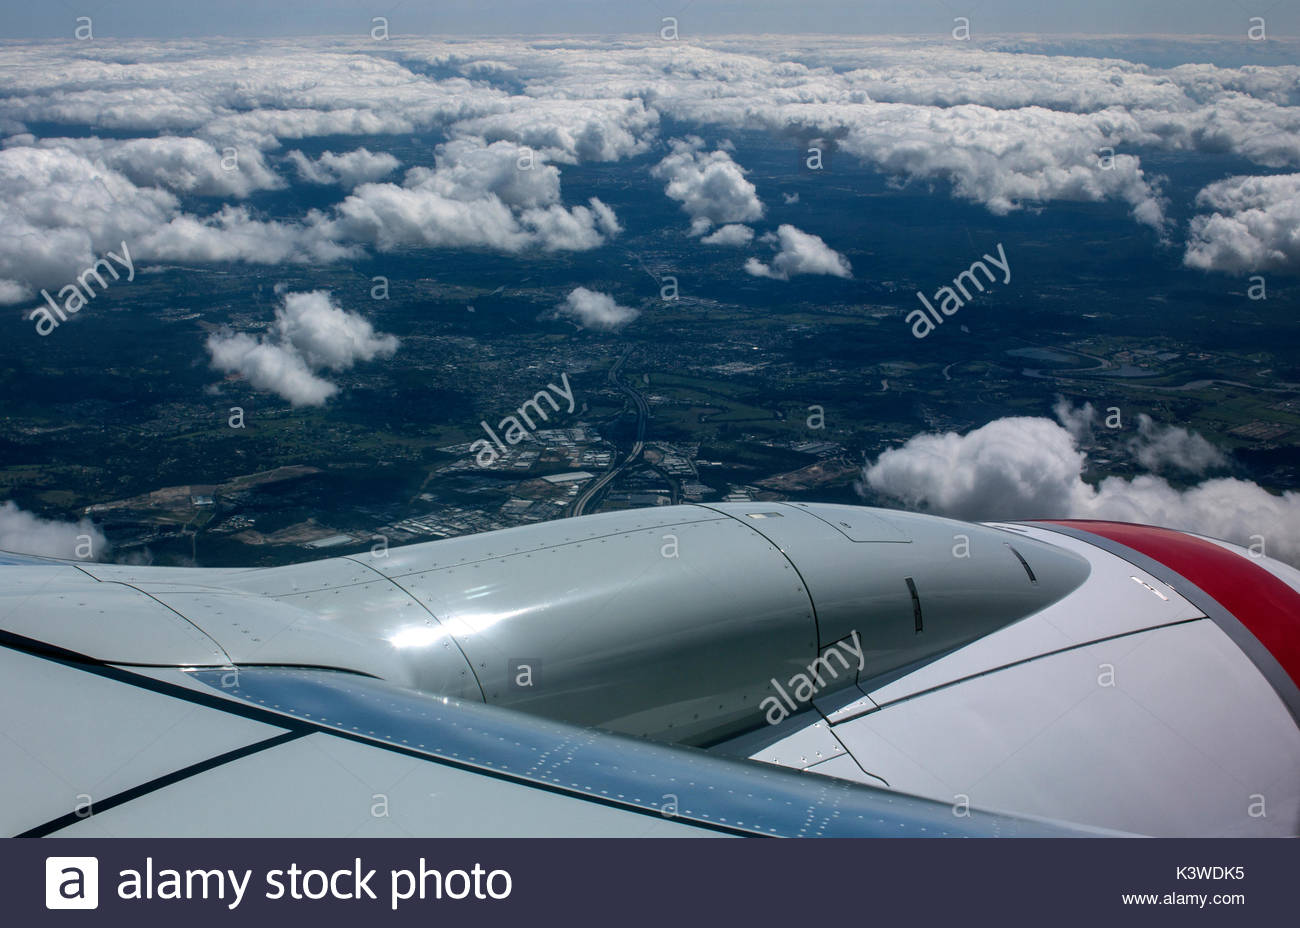 View looking over the jet engine and down through the clouds from the window of a commercial airliner. - Stock Image